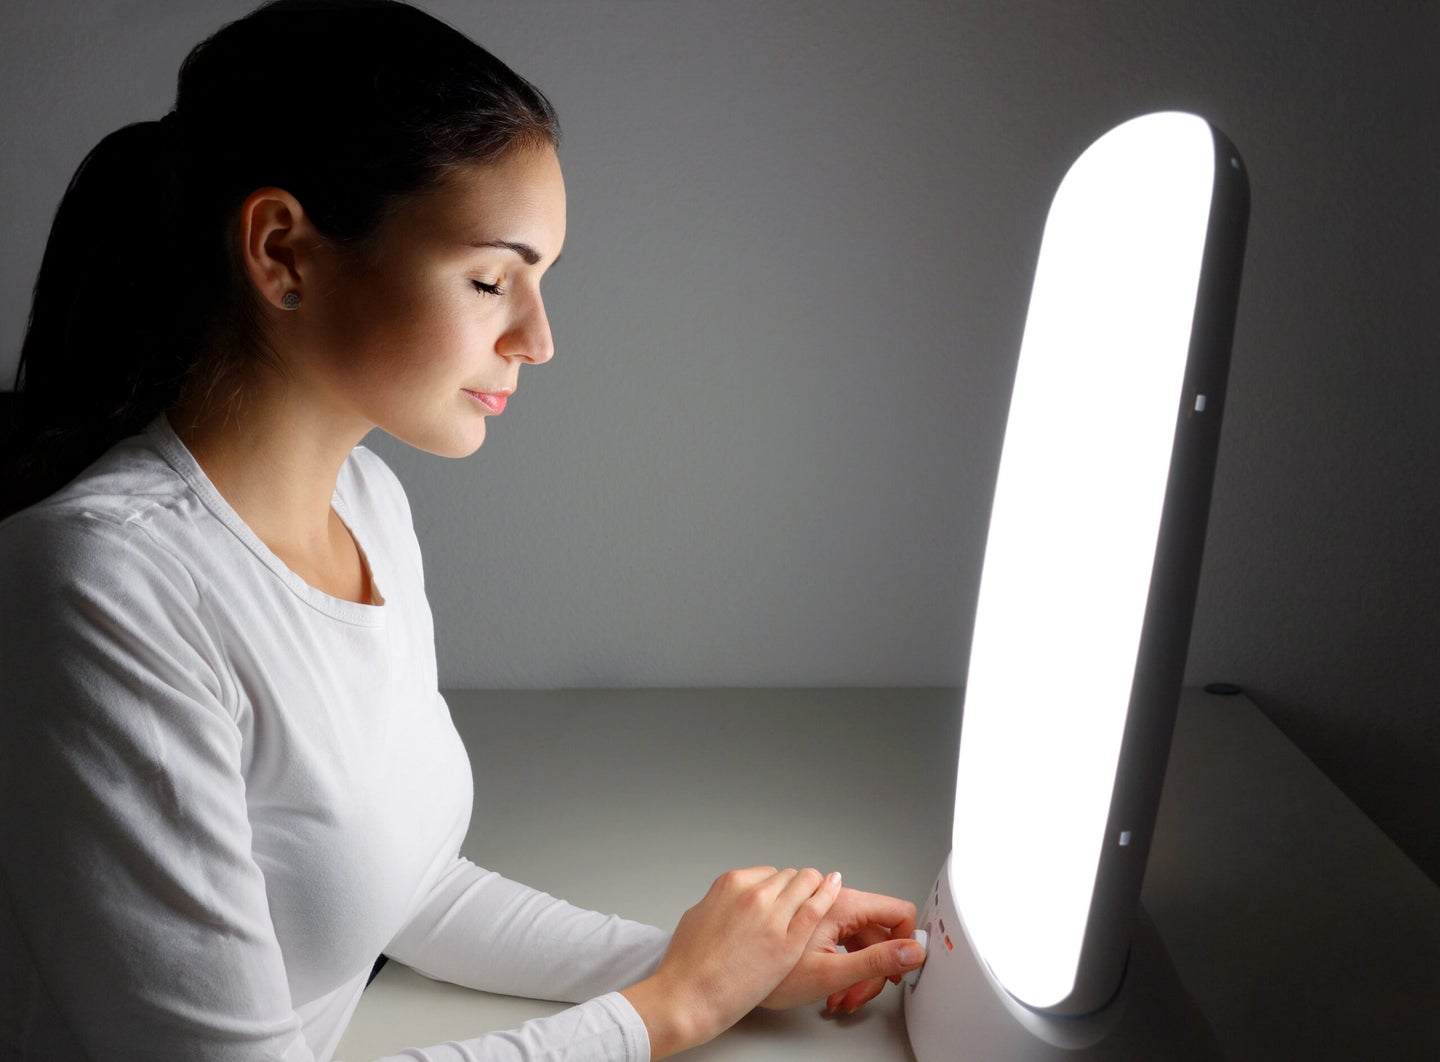 Sitting in front of a therapy lamp for